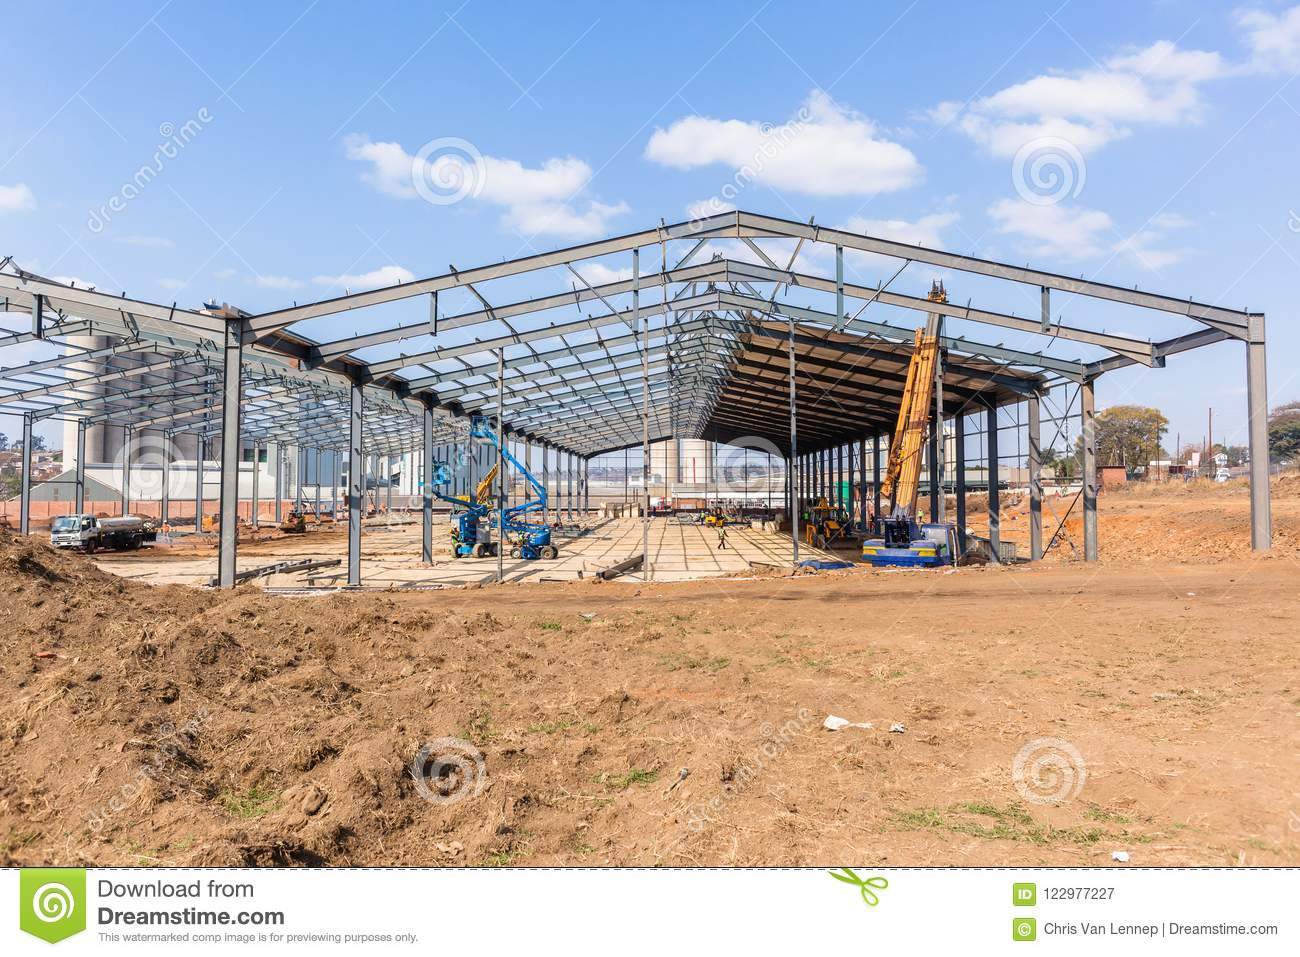 0eb052dd3cd New factory large warehouse construction steel beams frames assembled  halfway to completion of frame structure.